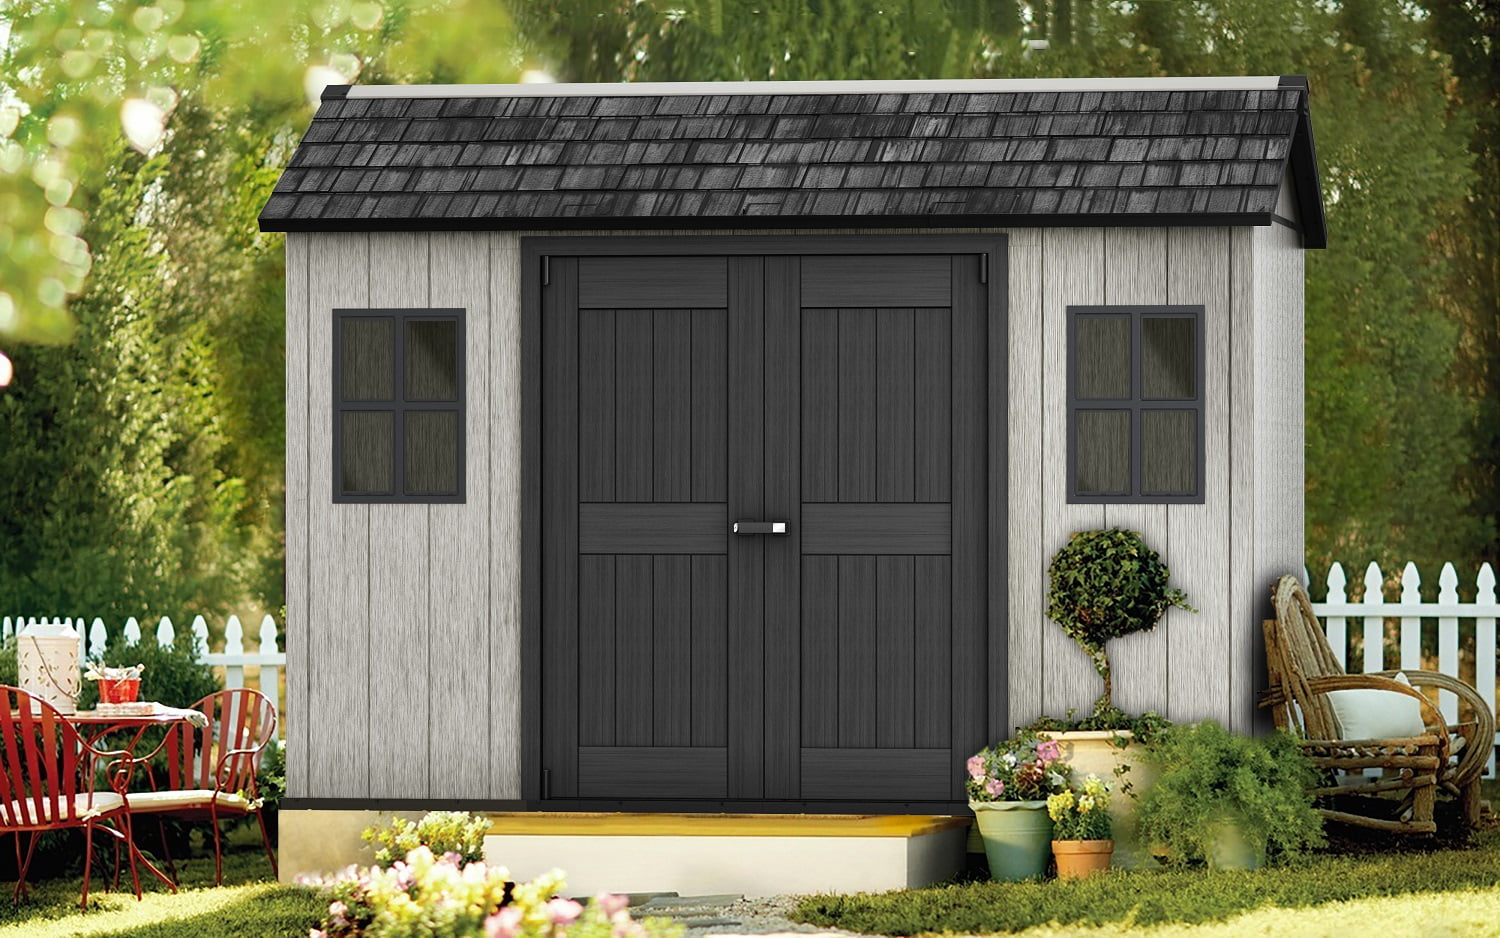 Keter Oakland 1175 3500x2290 Outdoor Storage Shed